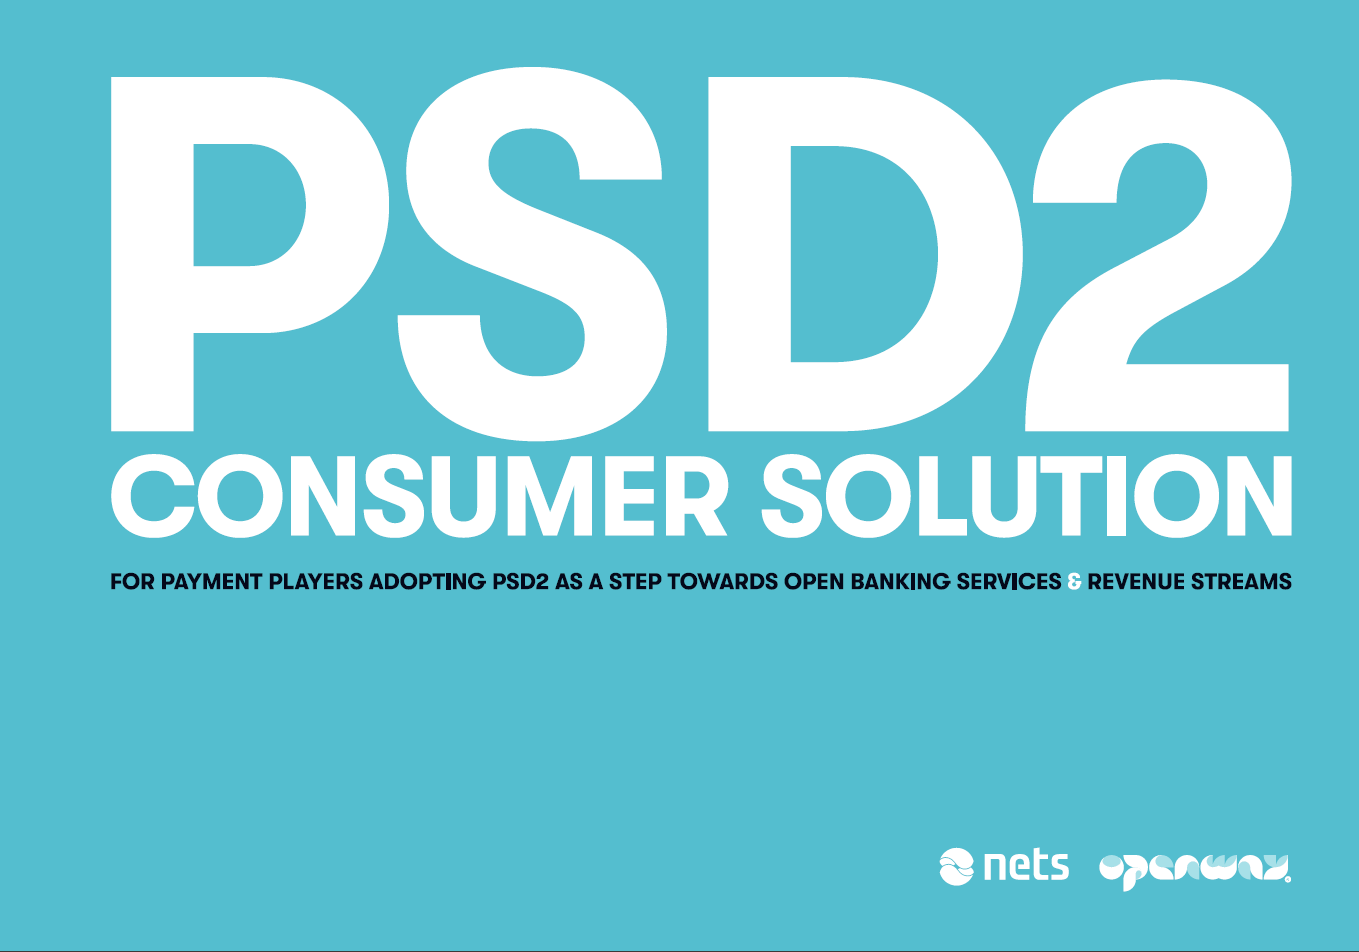 Nets and OpenWay Collaborate on Open Banking - Solution for payment players adopting PSD2 as a step towards Open Banking services & revenue streams